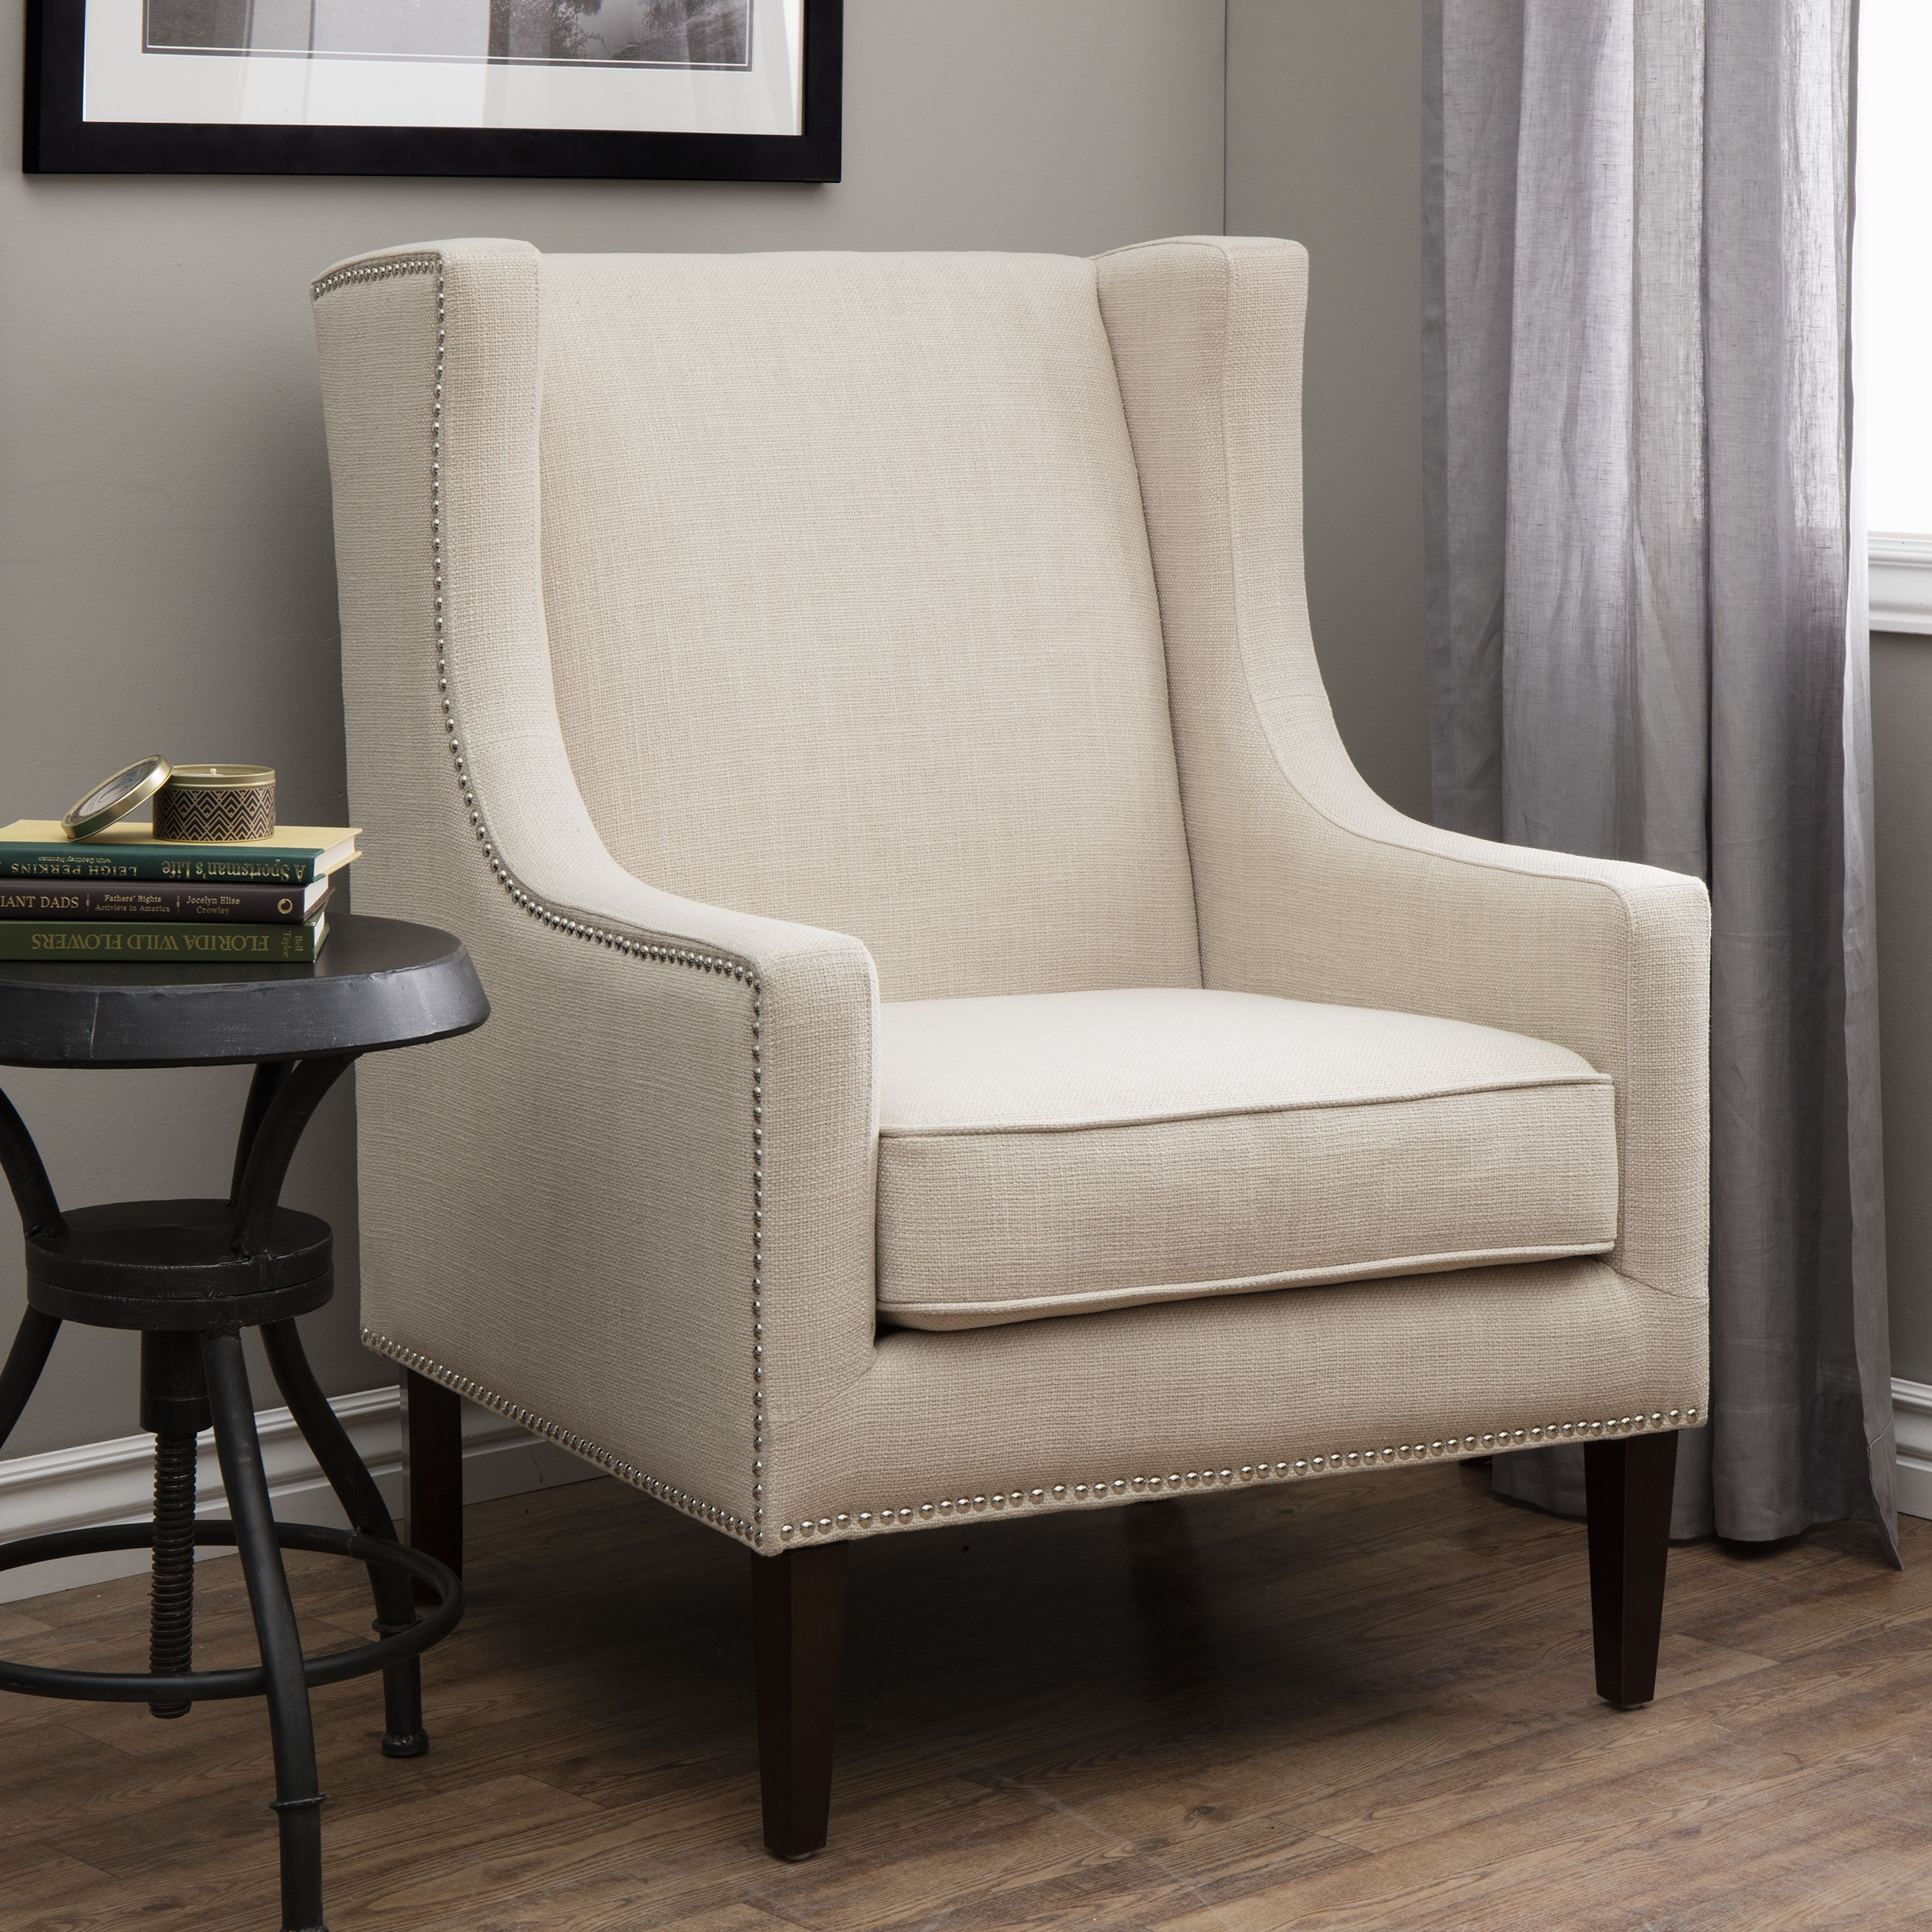 Overstuffed Wingback Chair Add A Modern Touch To Your Home Decor With This Stylish